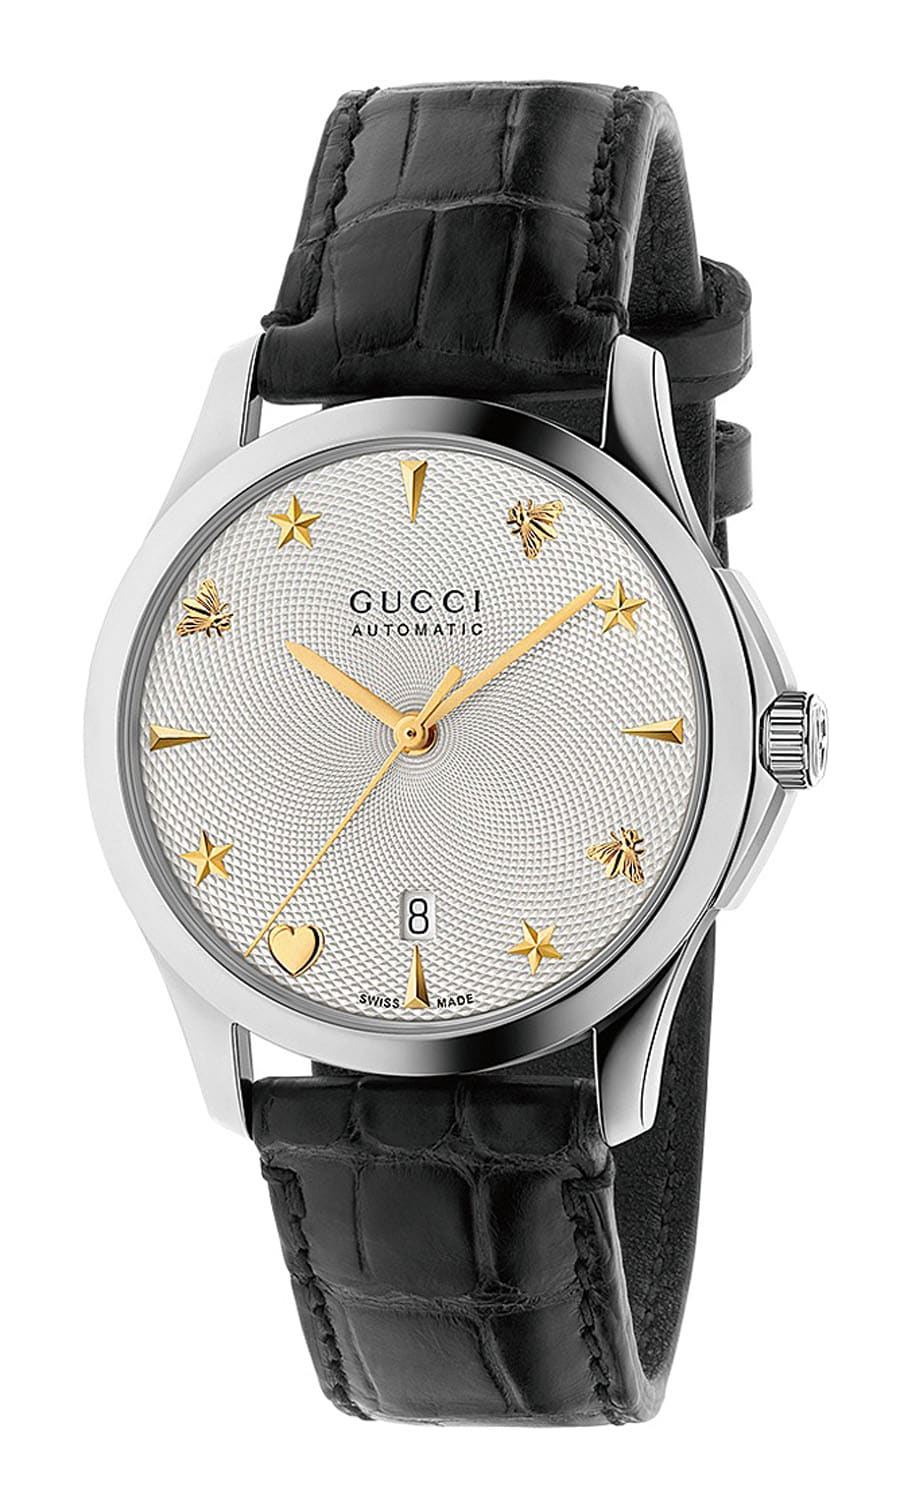 Gucci: G-Timeless Automatic